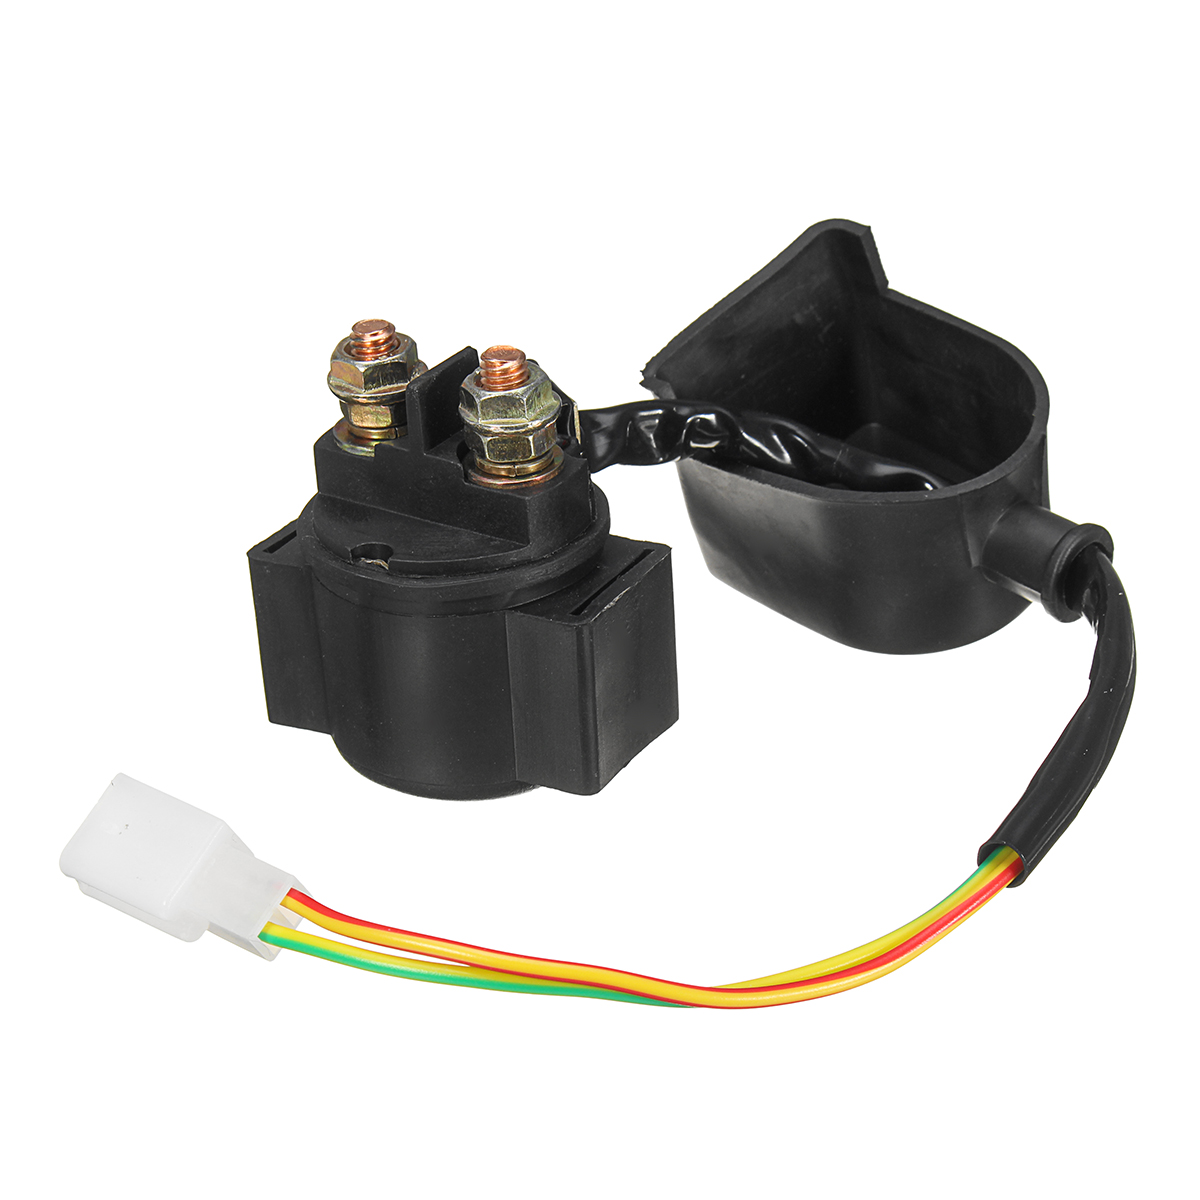 Forceful 12v Starter Solenoid Relay For Atv Go Kart Pit Dirt Bike Quad 90cc 110cc 125cc Skilful Manufacture Back To Search Resultsautomobiles & Motorcycles